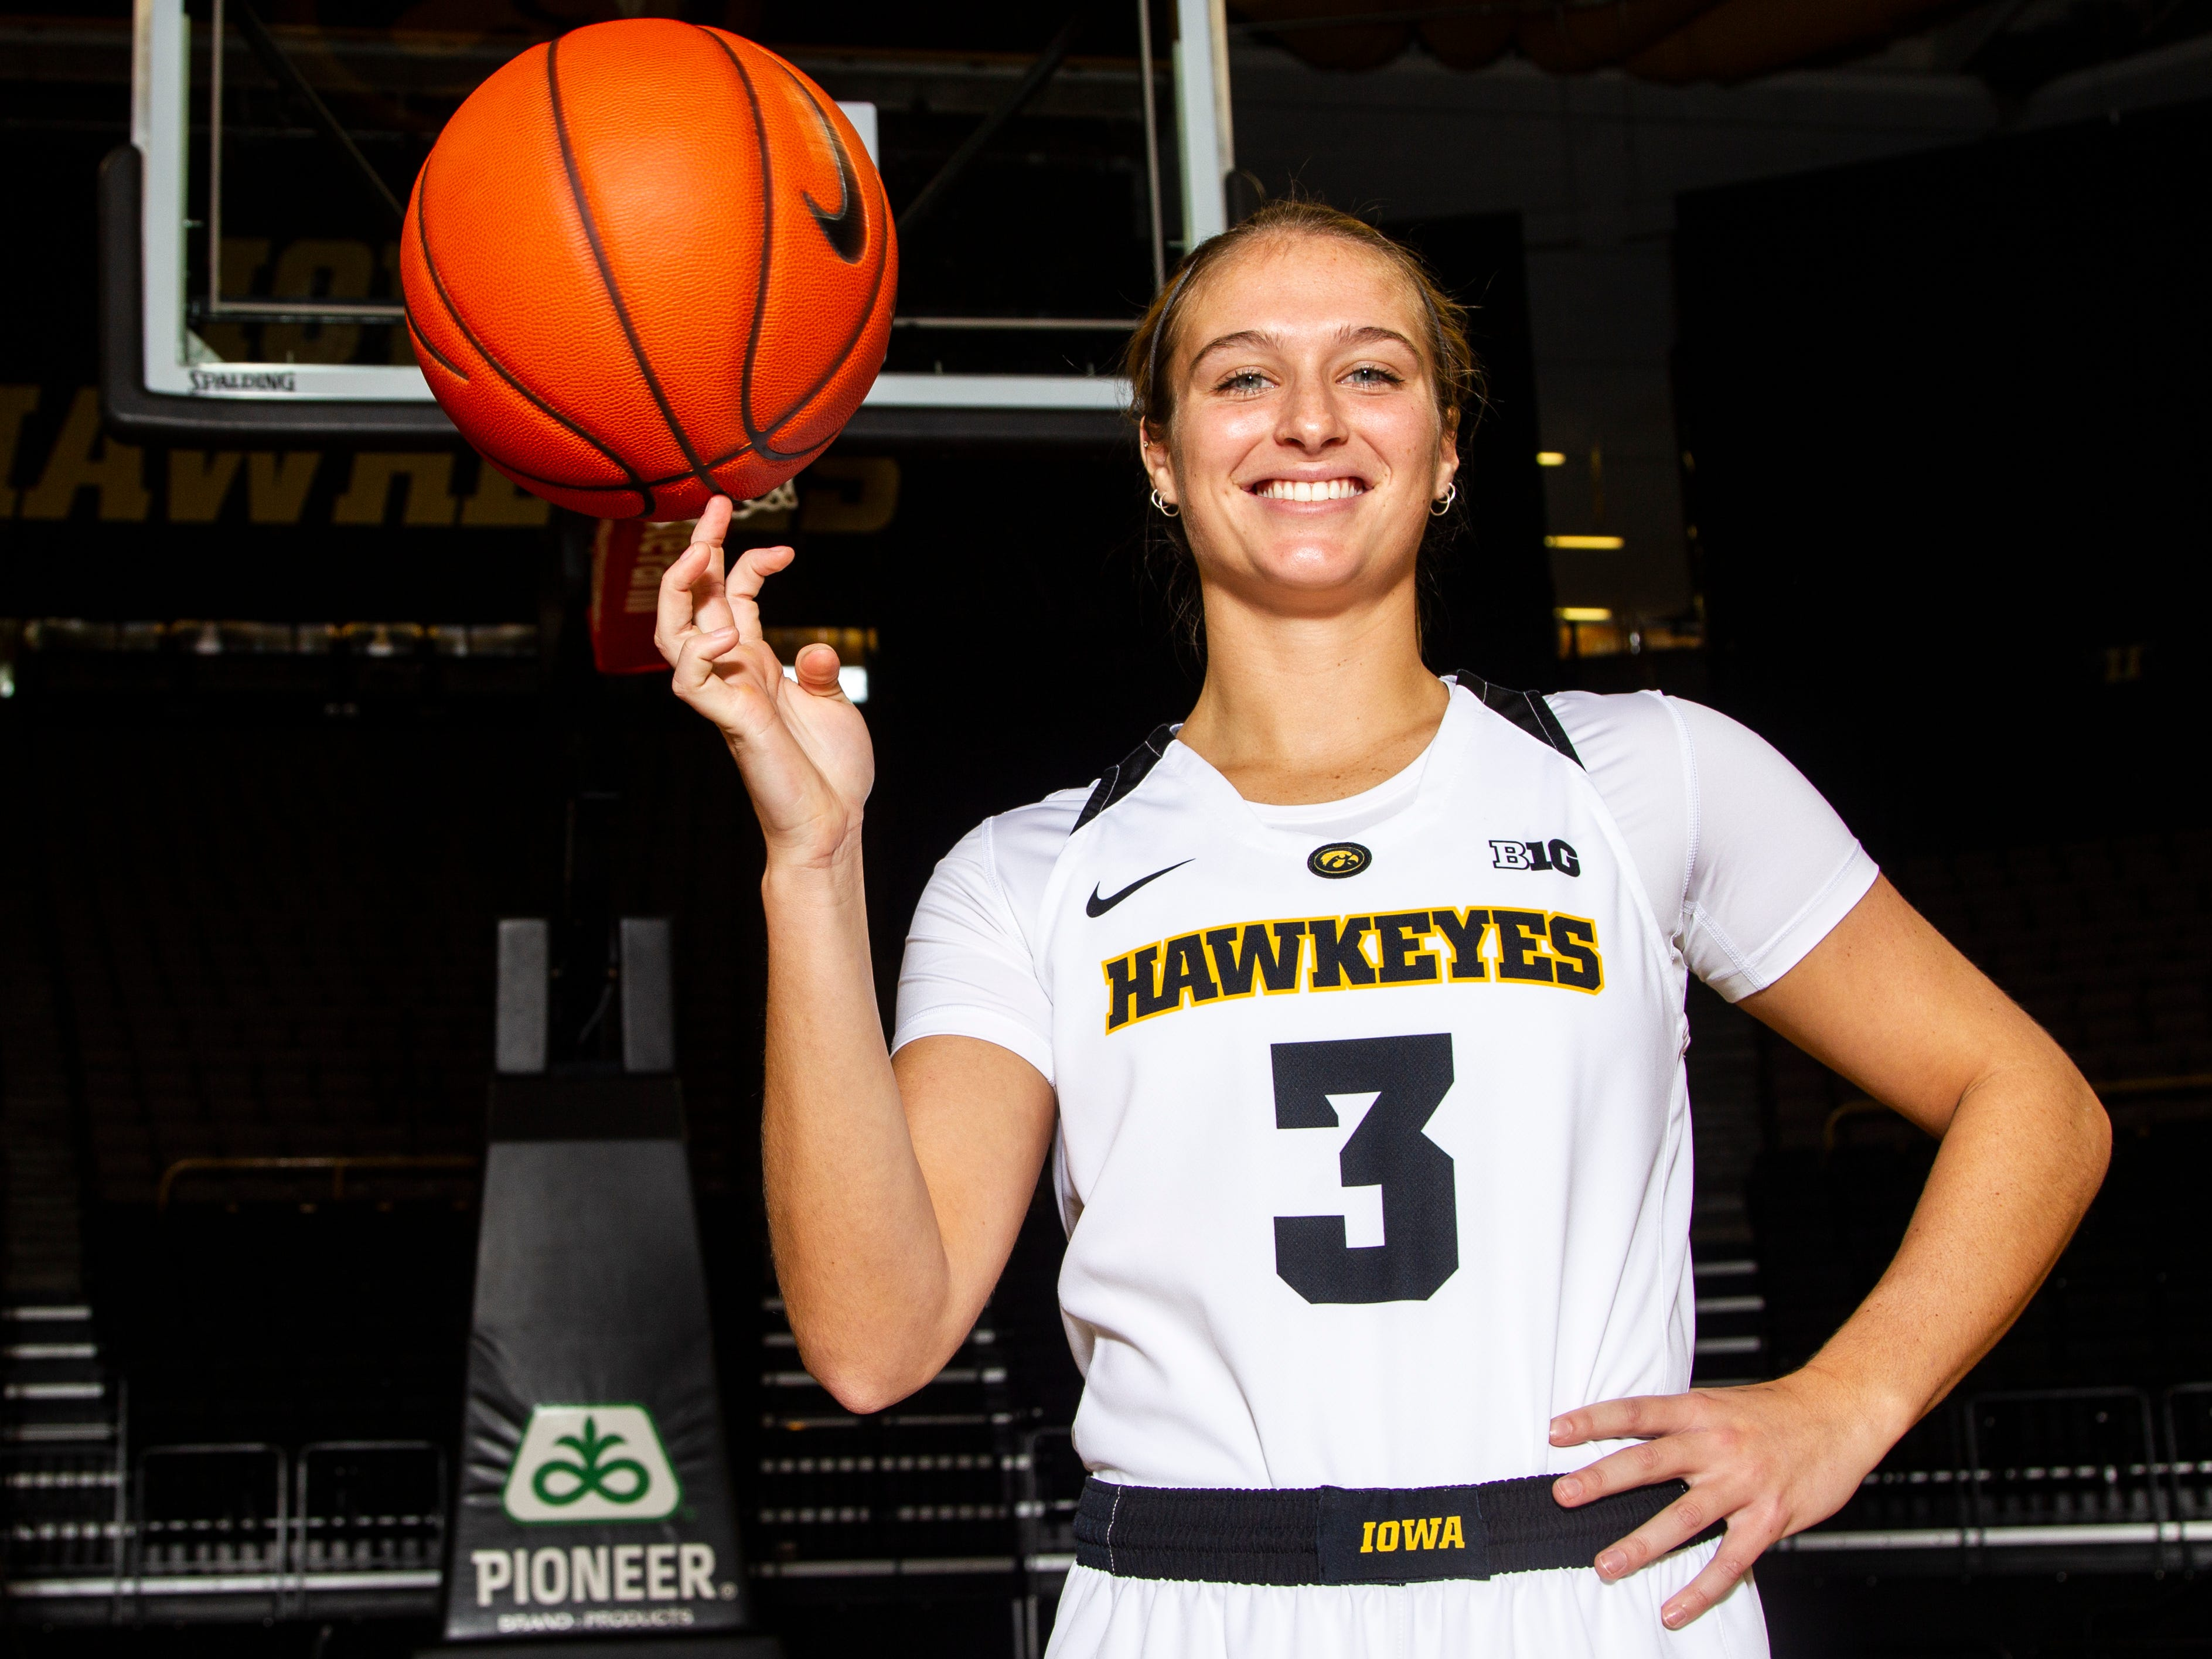 Iowa guard Makenzie Meyer (3) poses for a portrait during Hawkeye women's basketball media day on Wednesday, Oct. 31, 2018, at Carver-Hawkeye Arena in Iowa City.